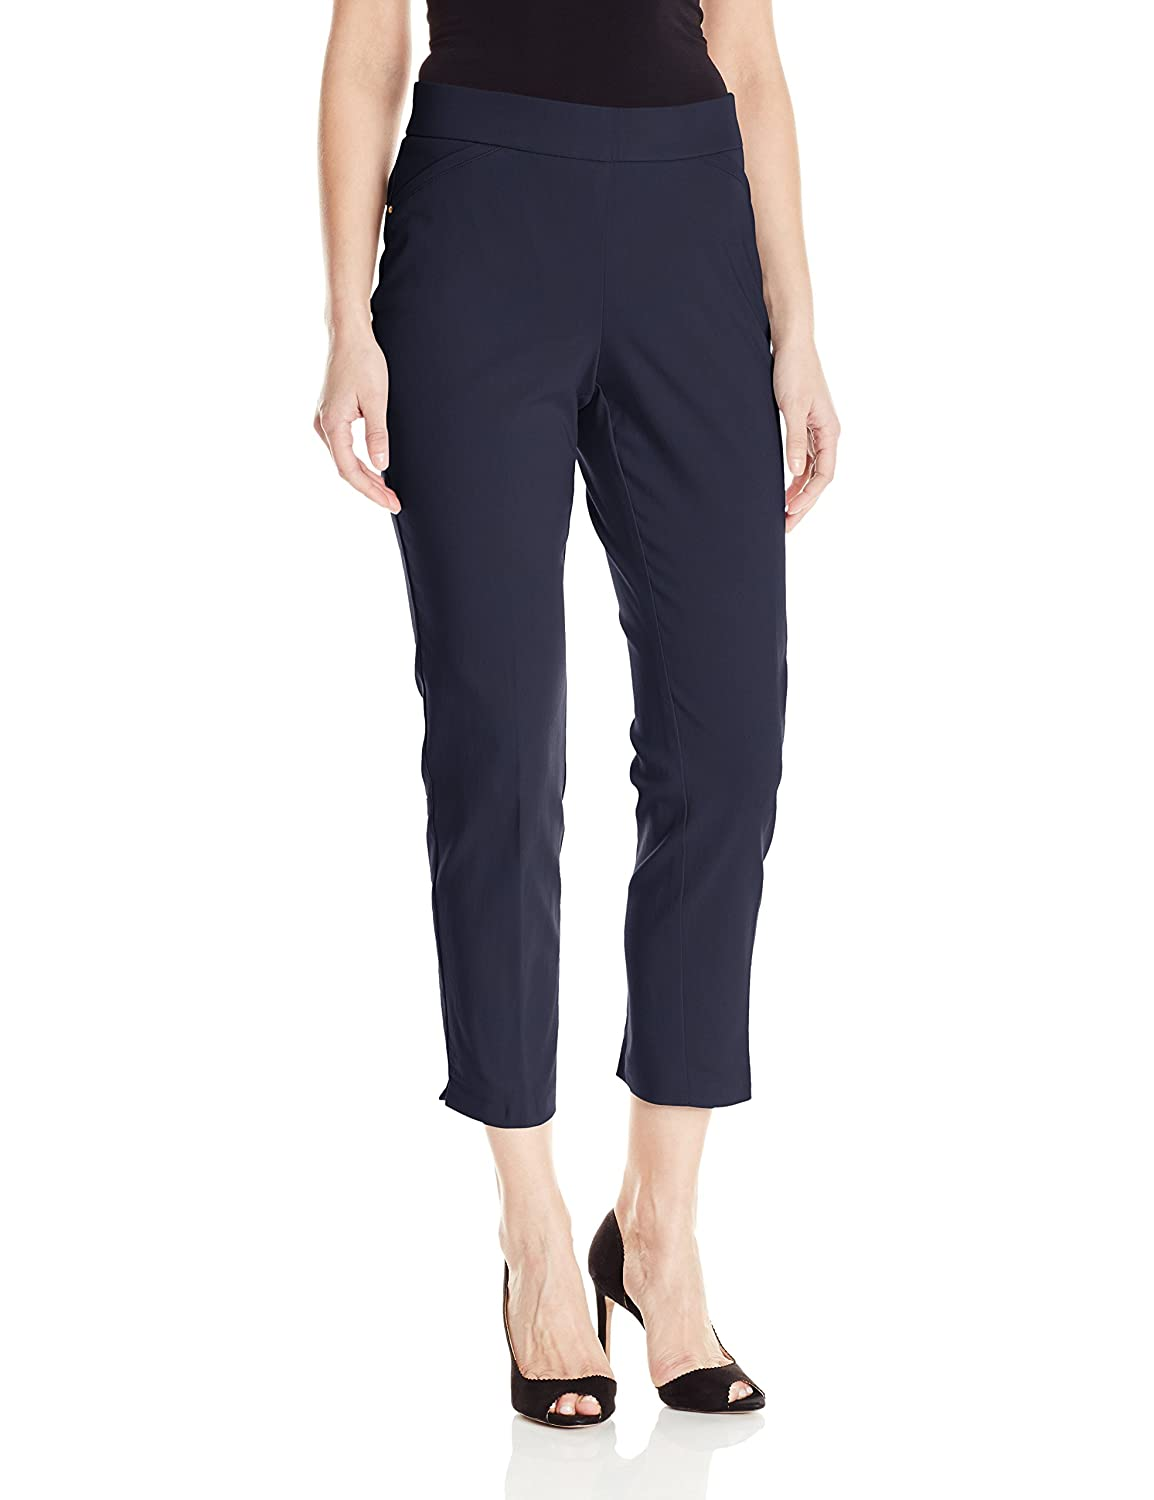 Briggs Womens Super Stretch Millennium Slimming Pull-on Ankle Pant 589ASA3BR